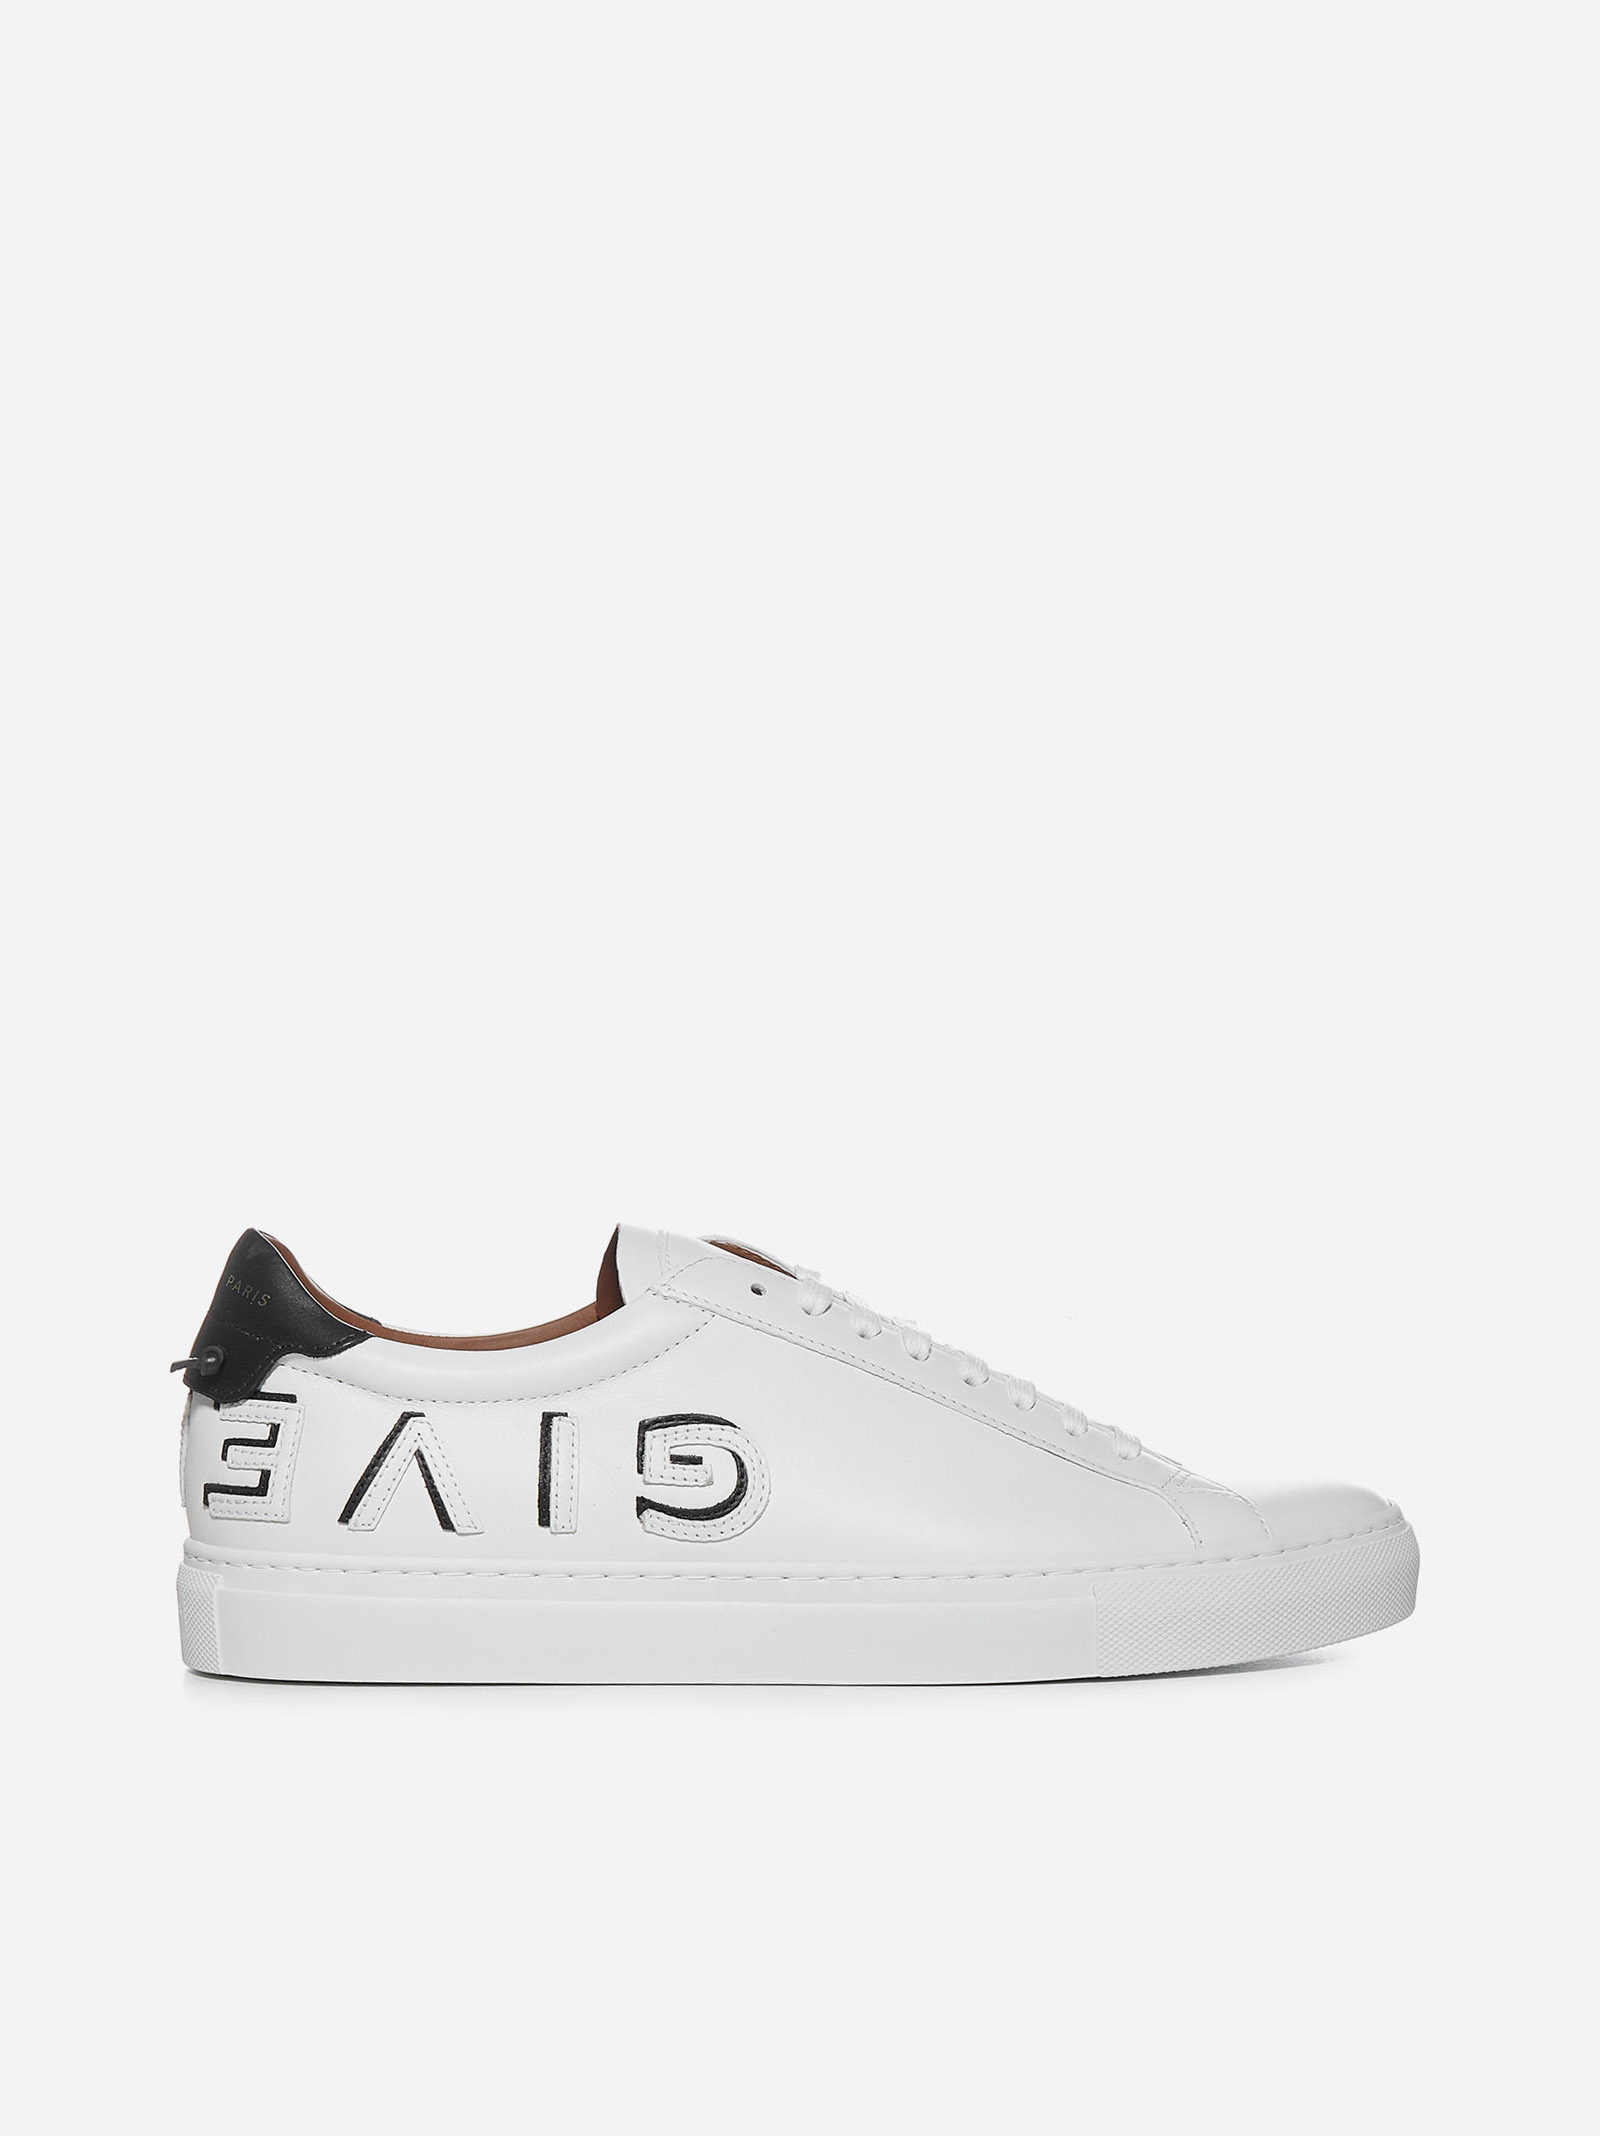 Givenchy URBAN-STREET LOGO CALFSKIN SNEAKERS